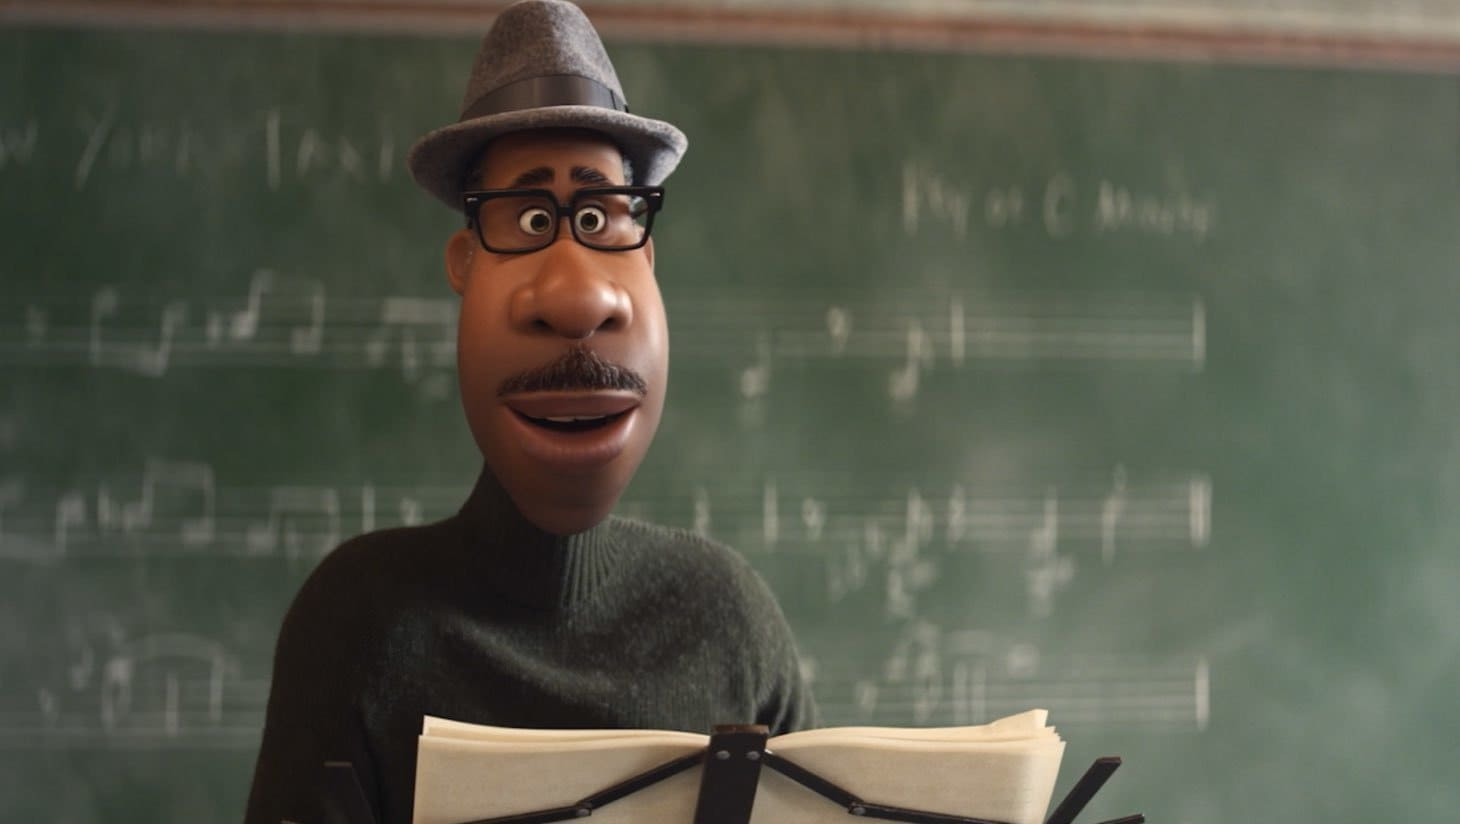 Joe Gardner, voiced by Jamie Foxx, crossing a road